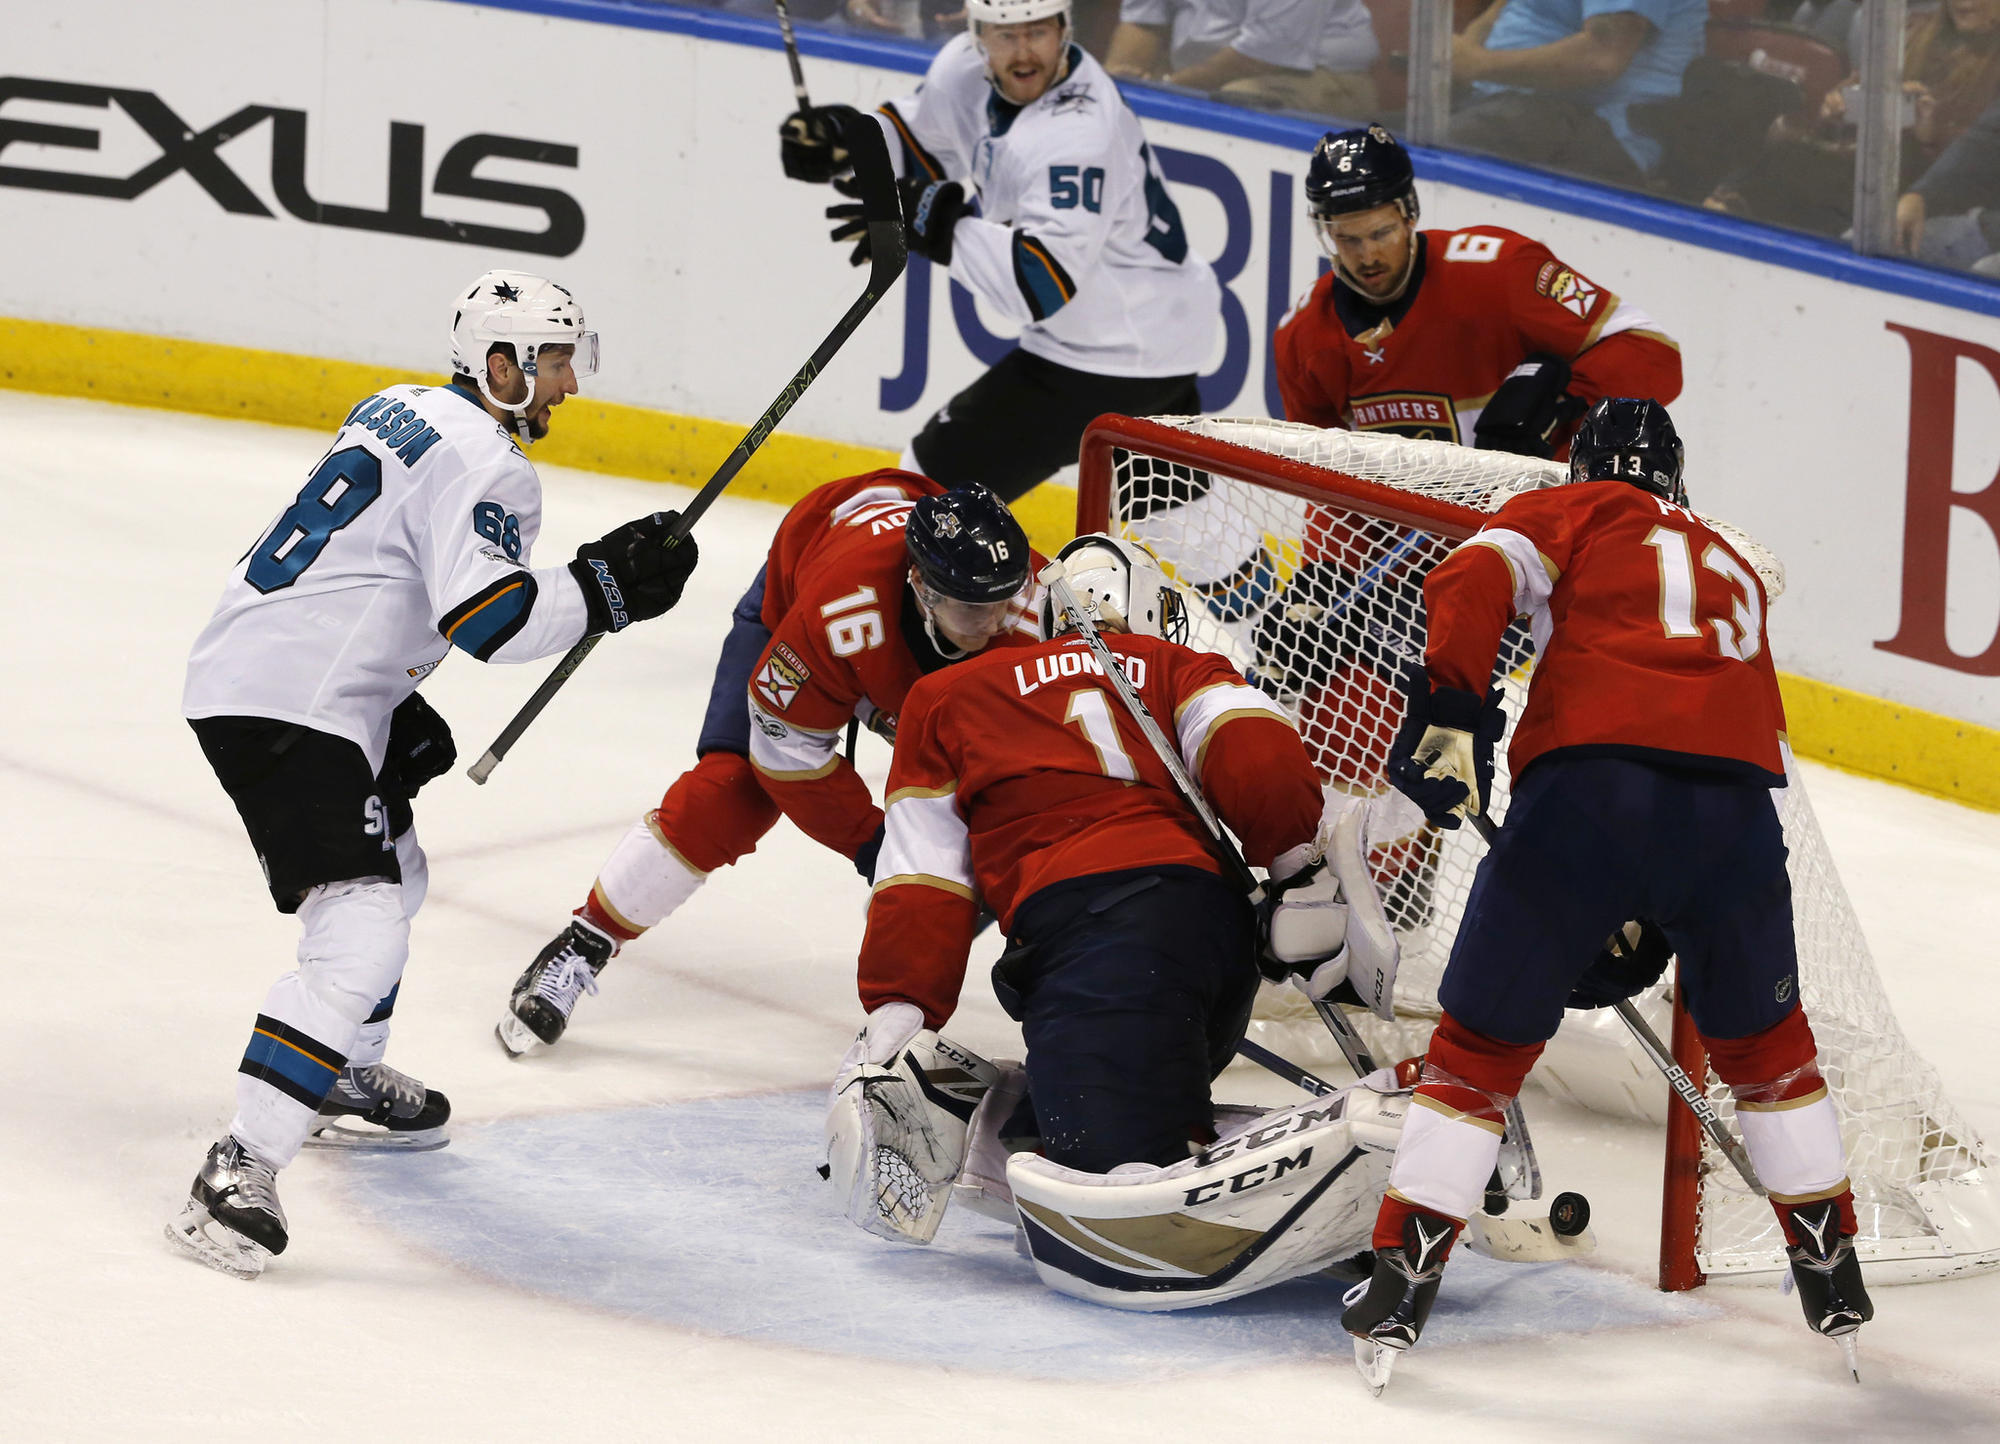 Fl-sp-panthers-sharks-next-day-look-20171202